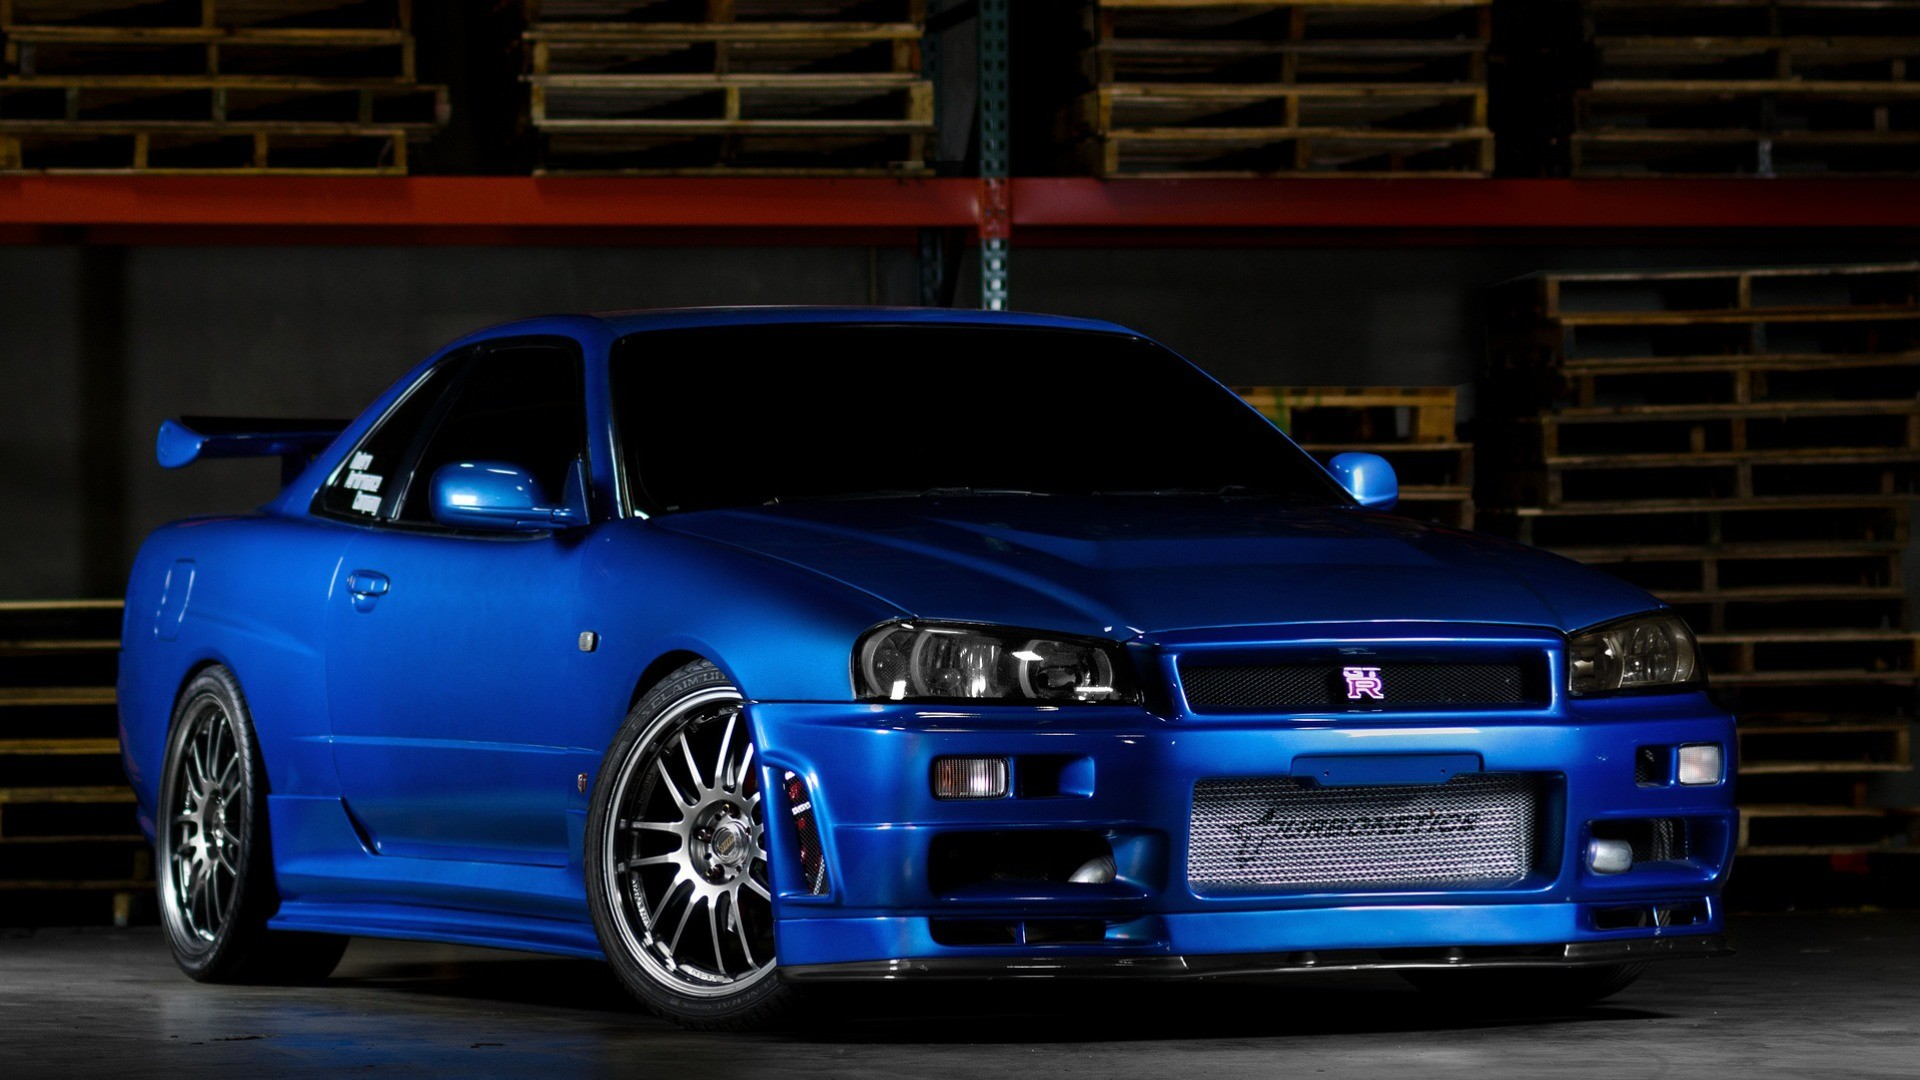 Nissan Skyline Fast and Furious 7 Muscle Cars Wallpapers